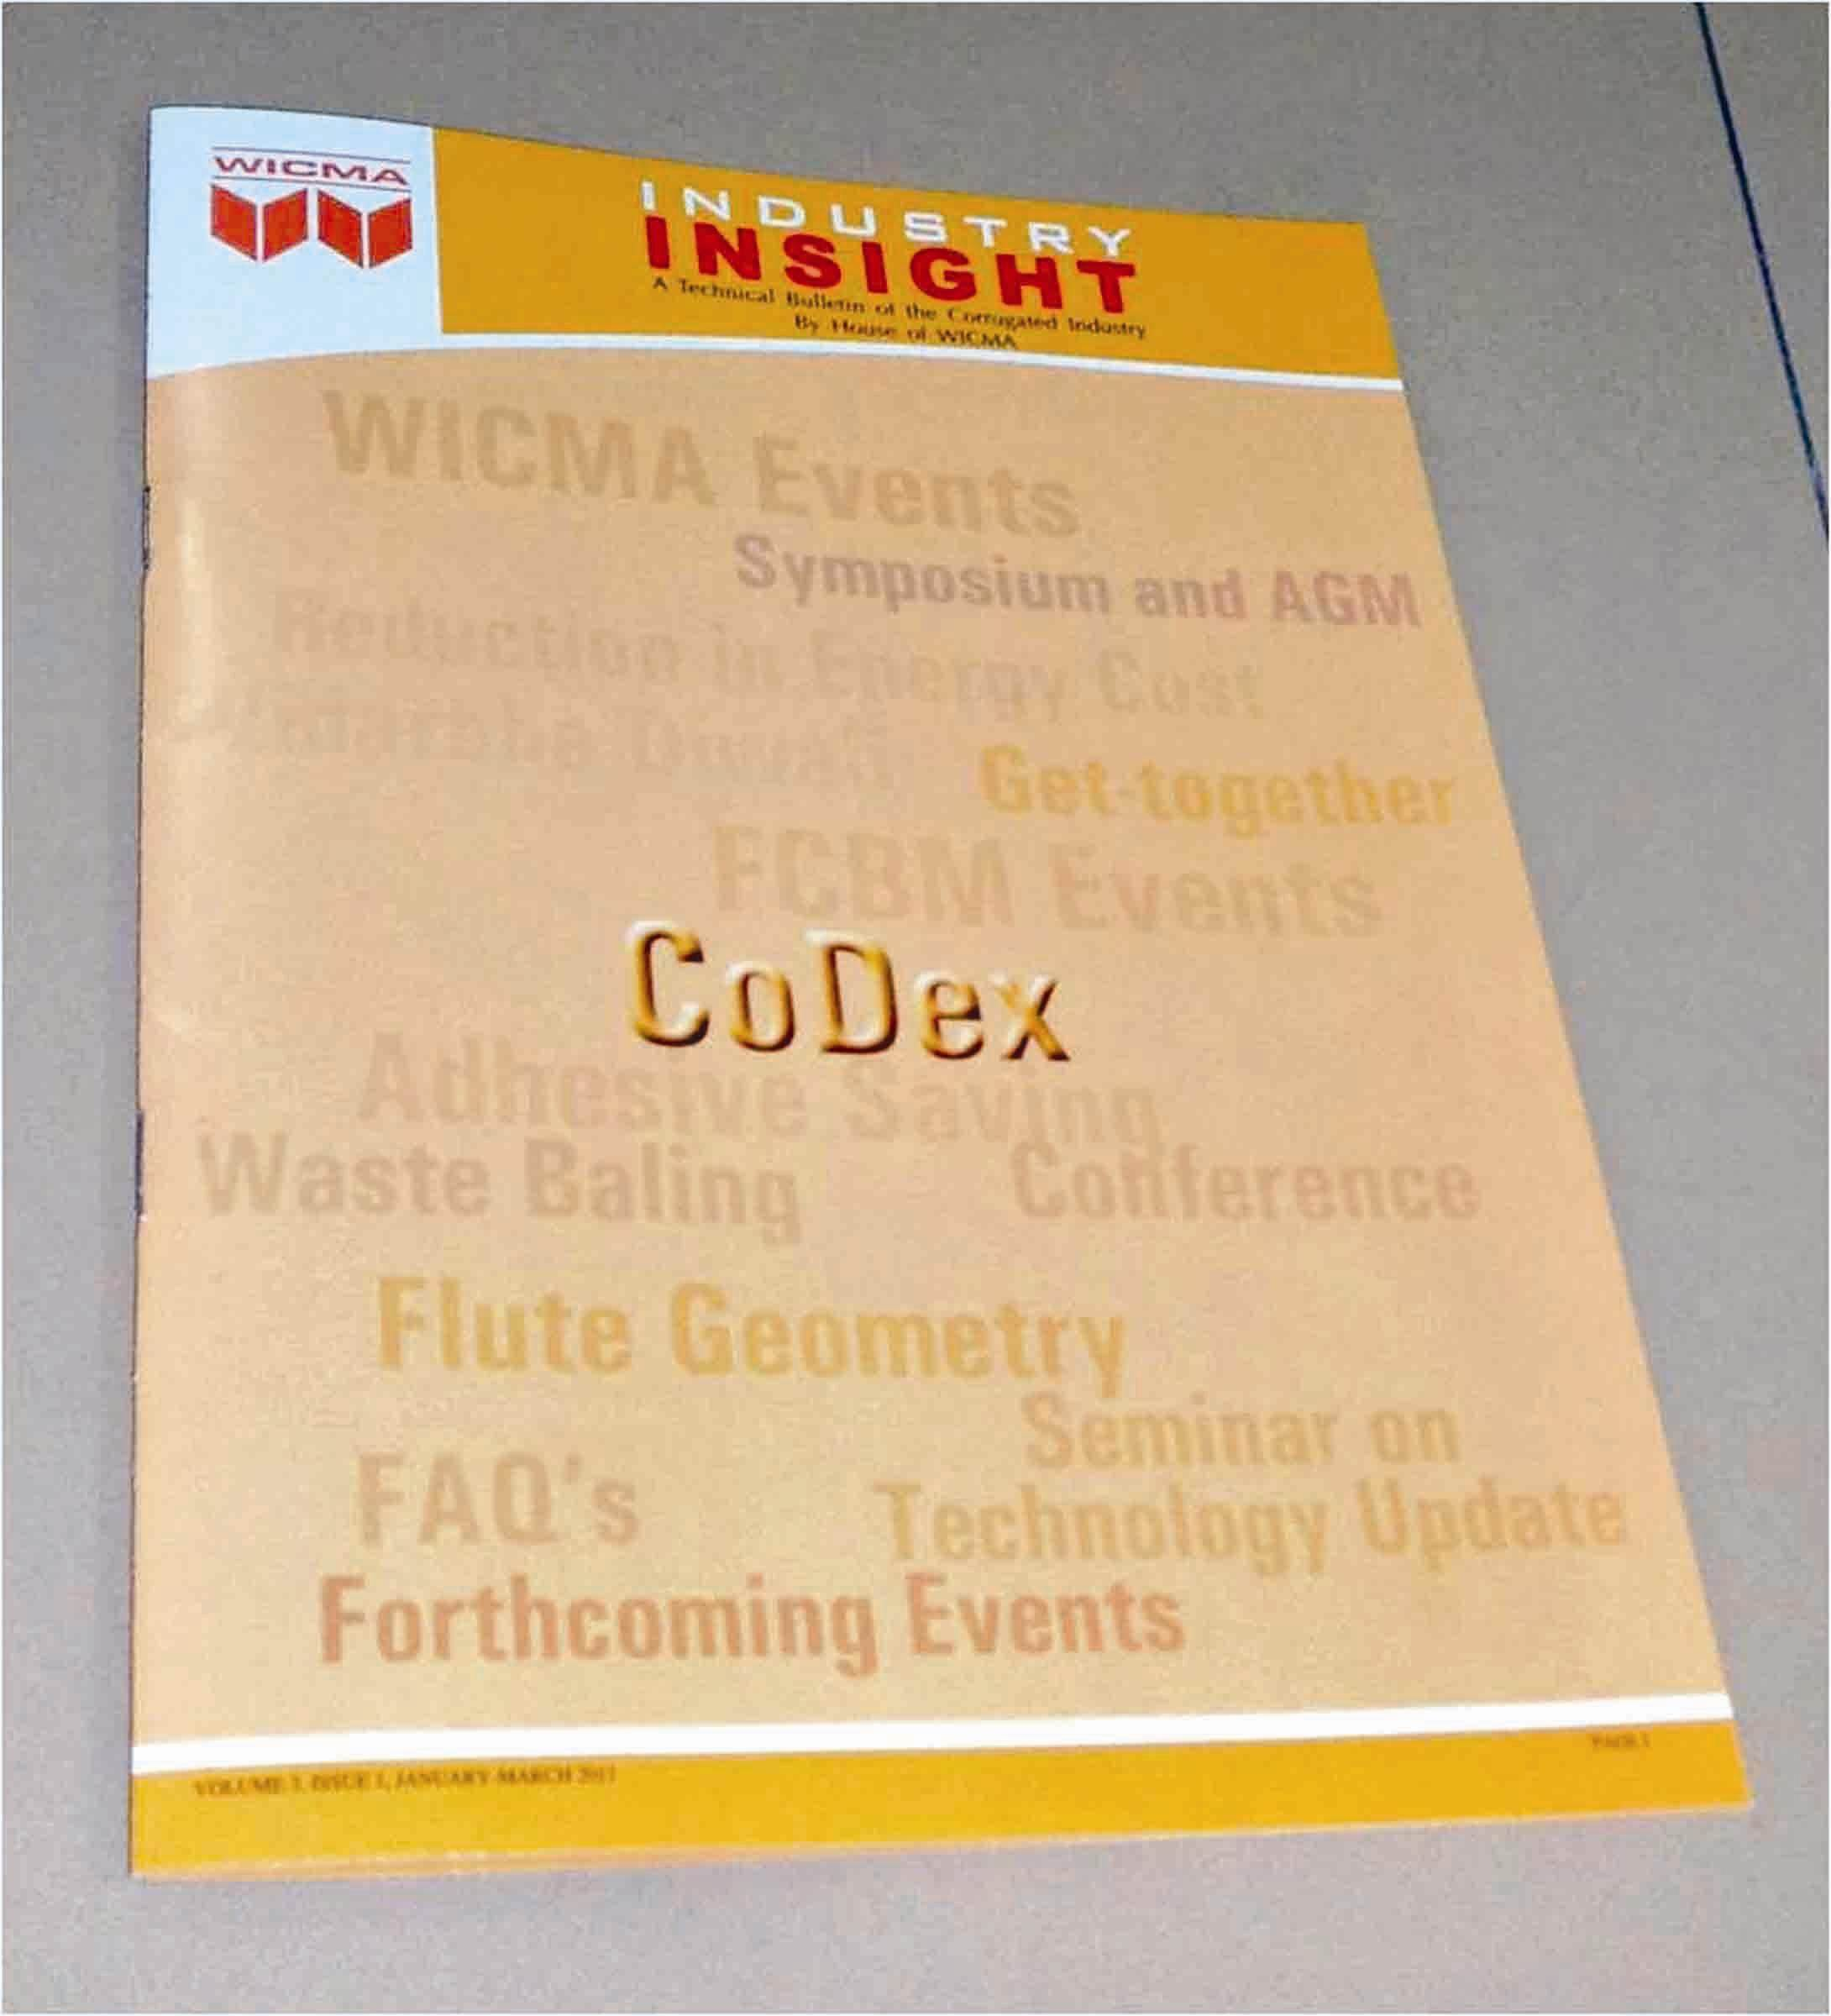 WICMA: Reshaping the brown box